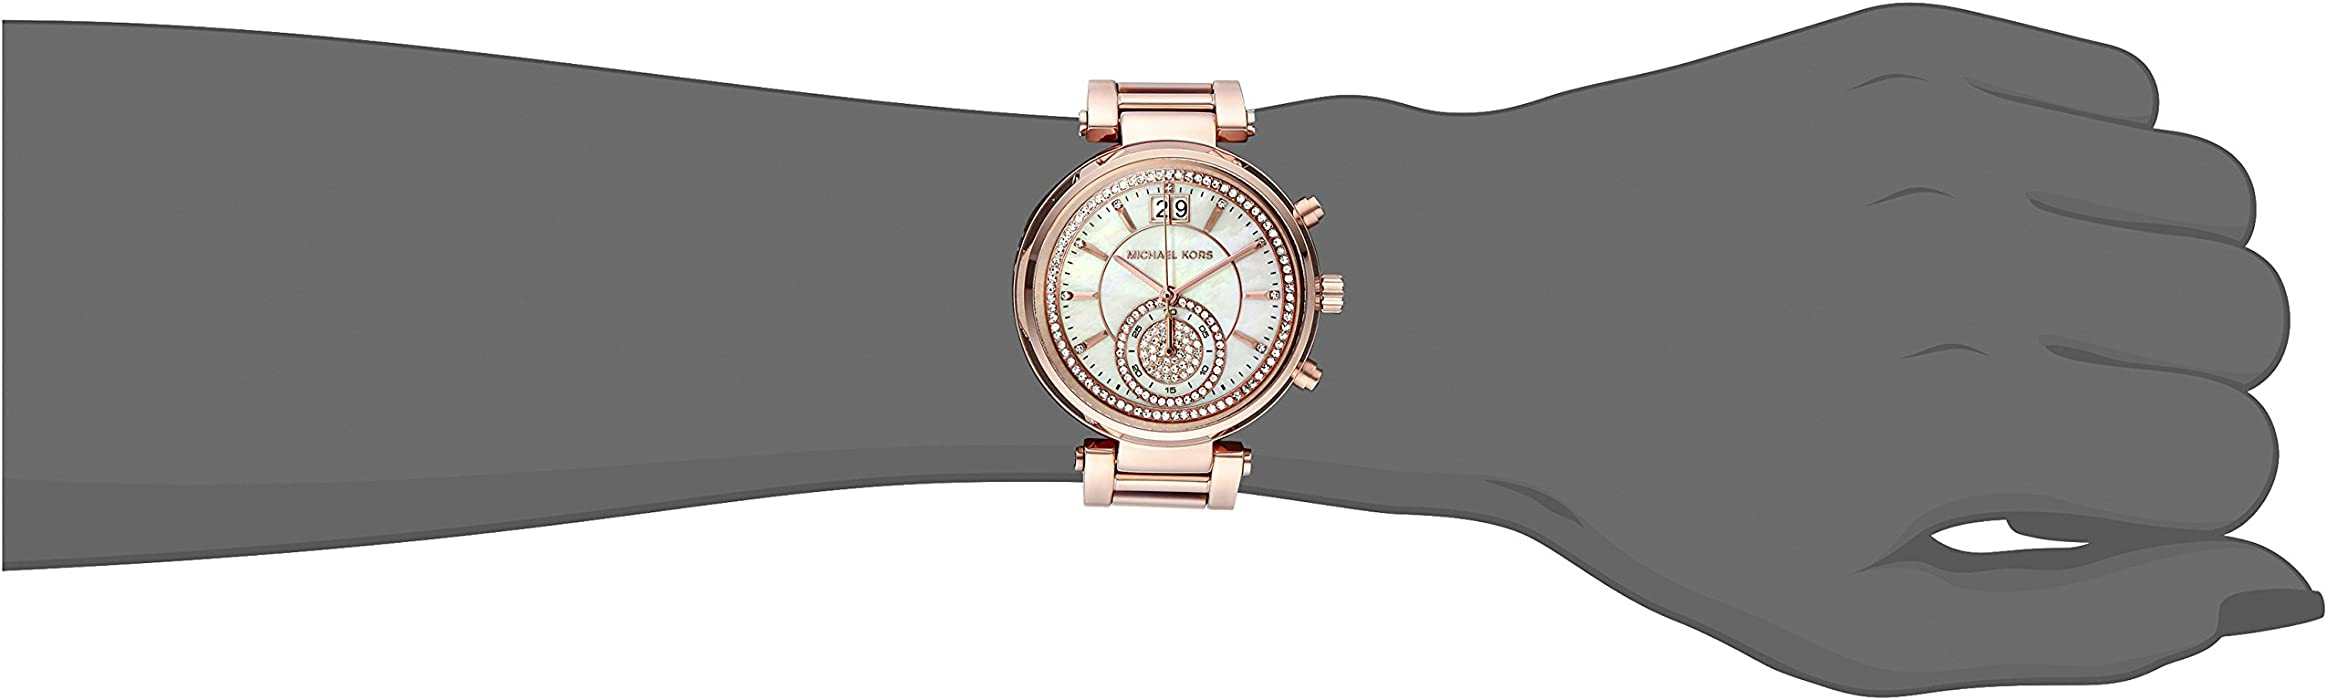 3dfcf023792d Amazon.com  Michael Kors Women s Sawyer Rose Gold-Tone Watch MK6282 ...